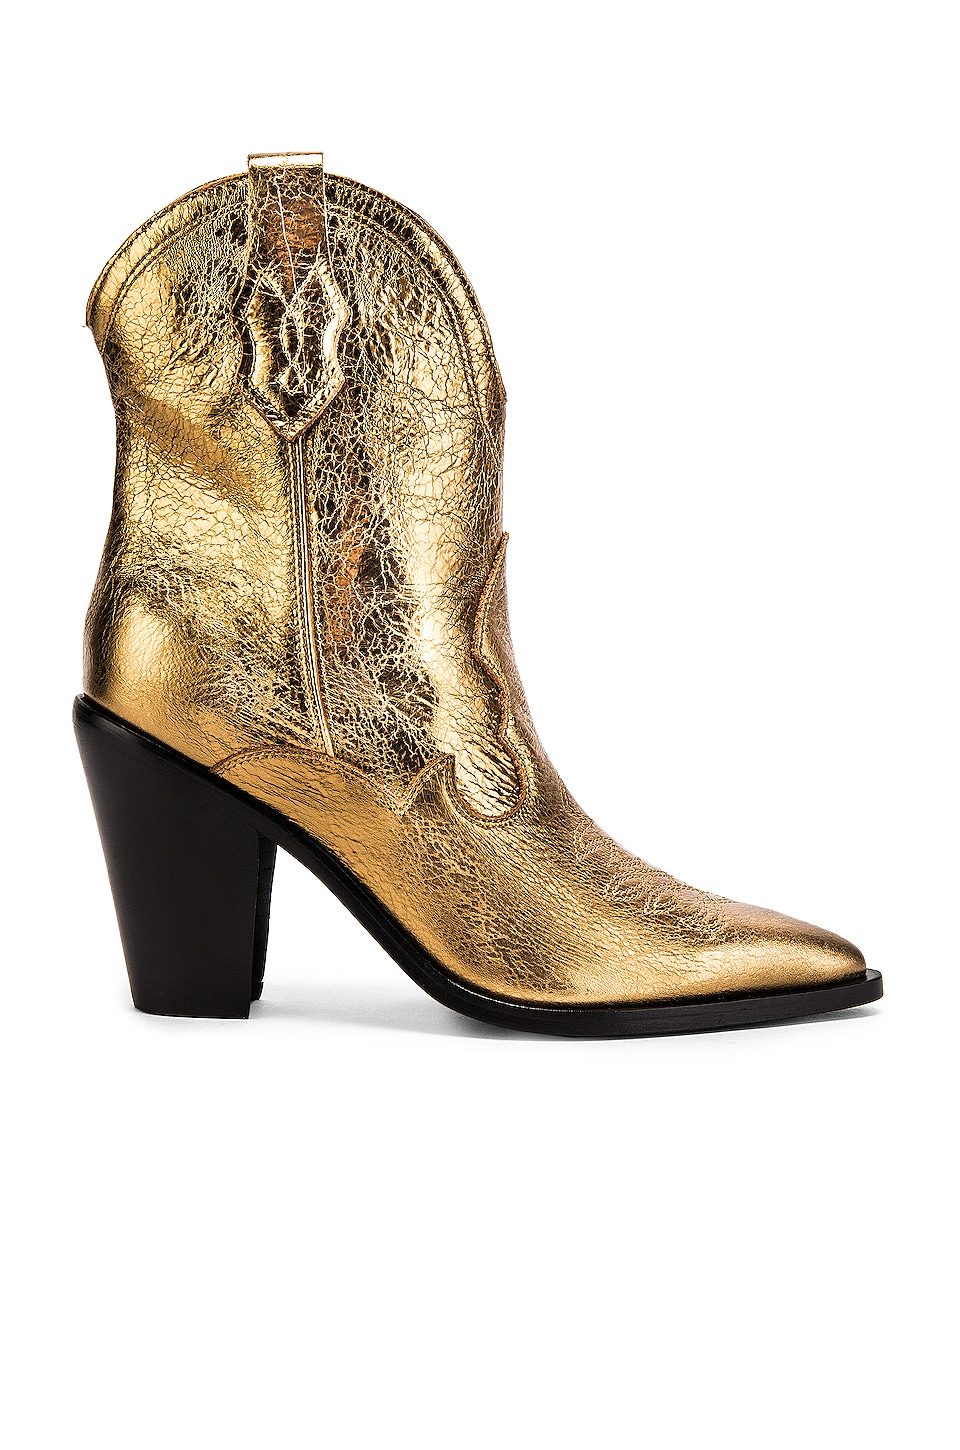 Sigerson Morrison Kalila Boot in Bronze